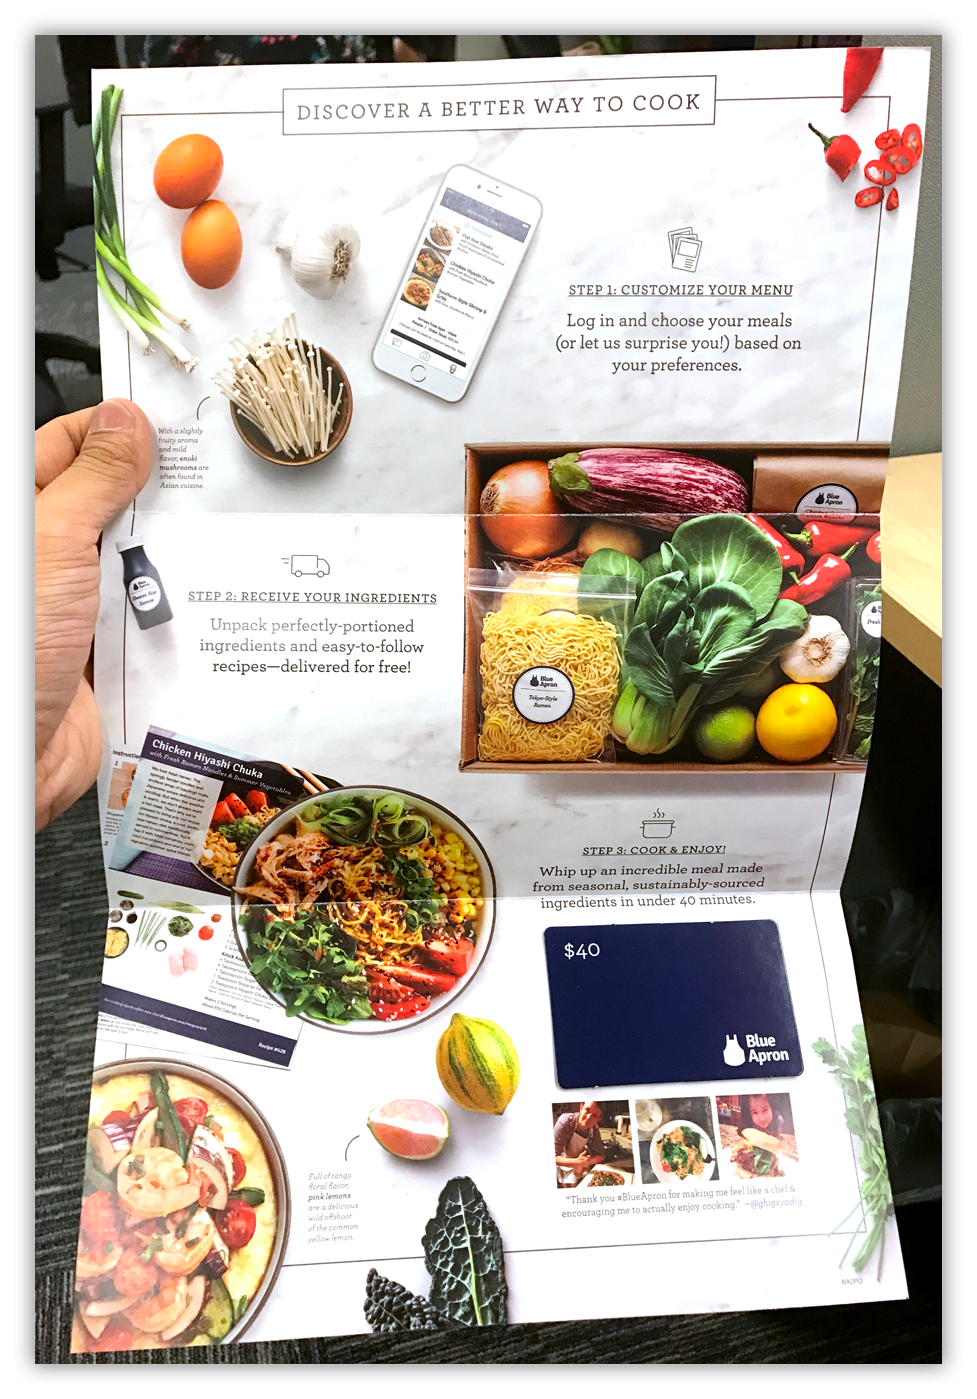 Blue Apron's direct mail piece